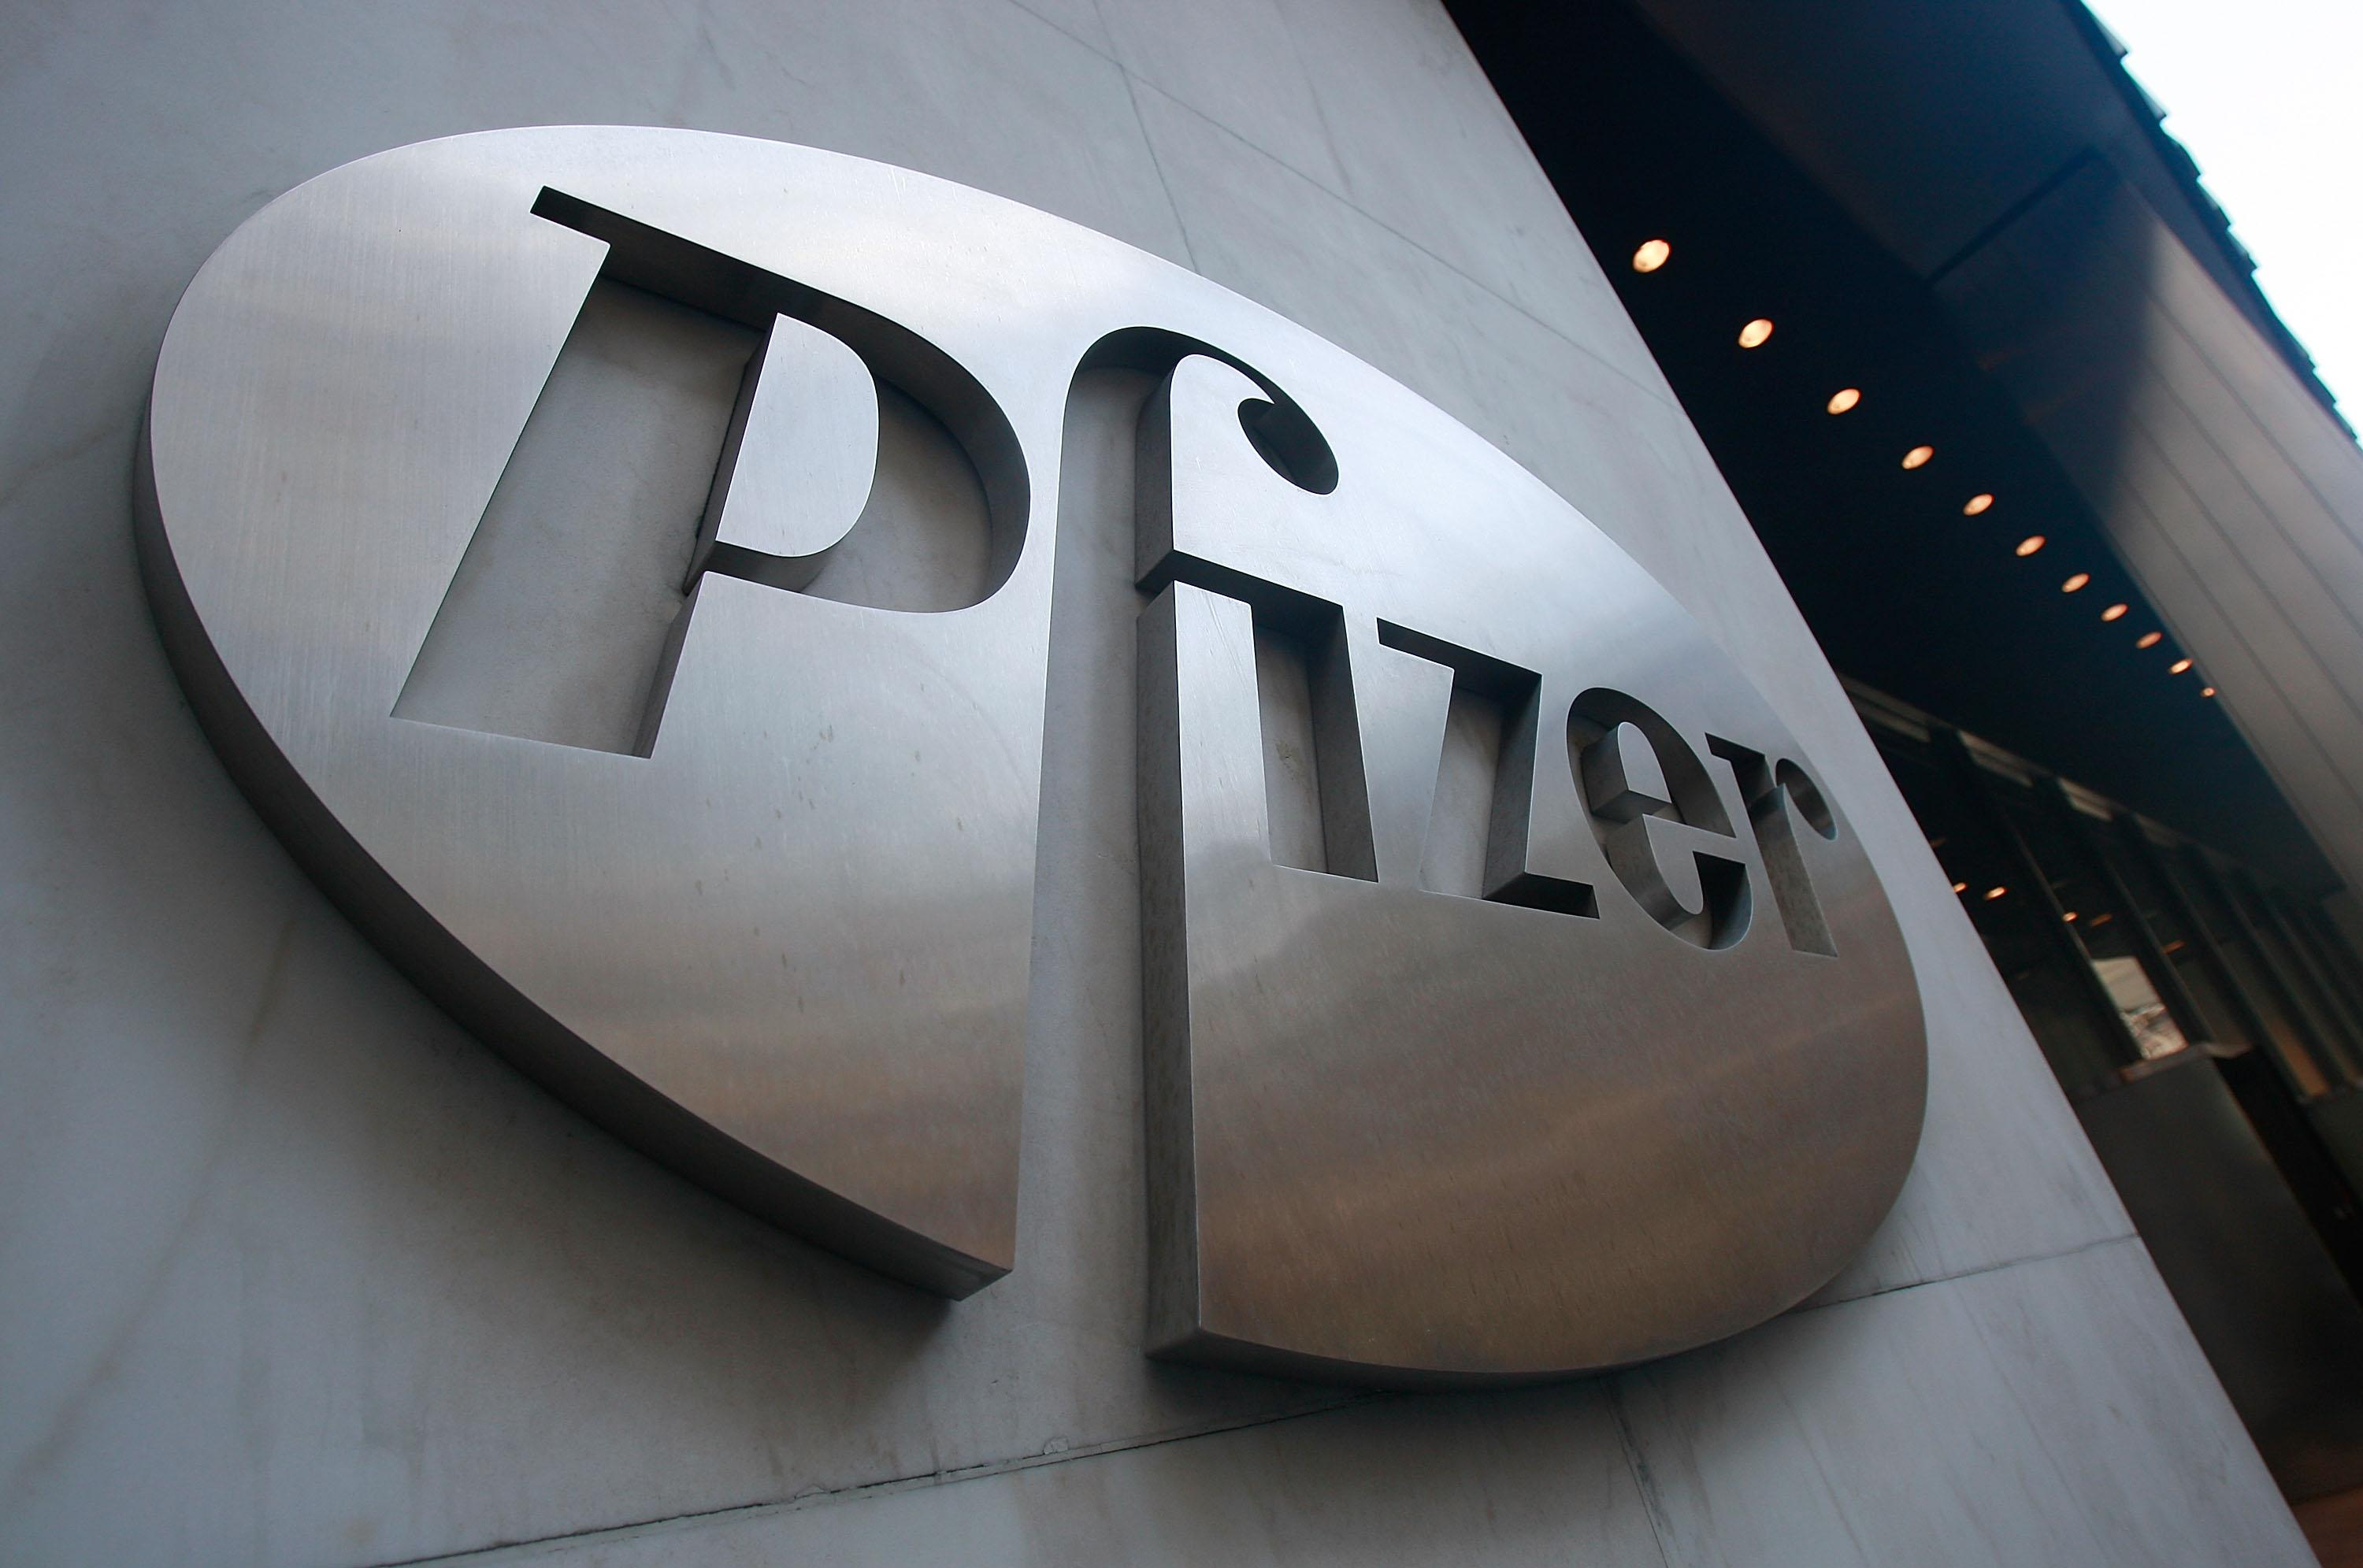 Pfizer acquires cancer treatment maker for $11.4B